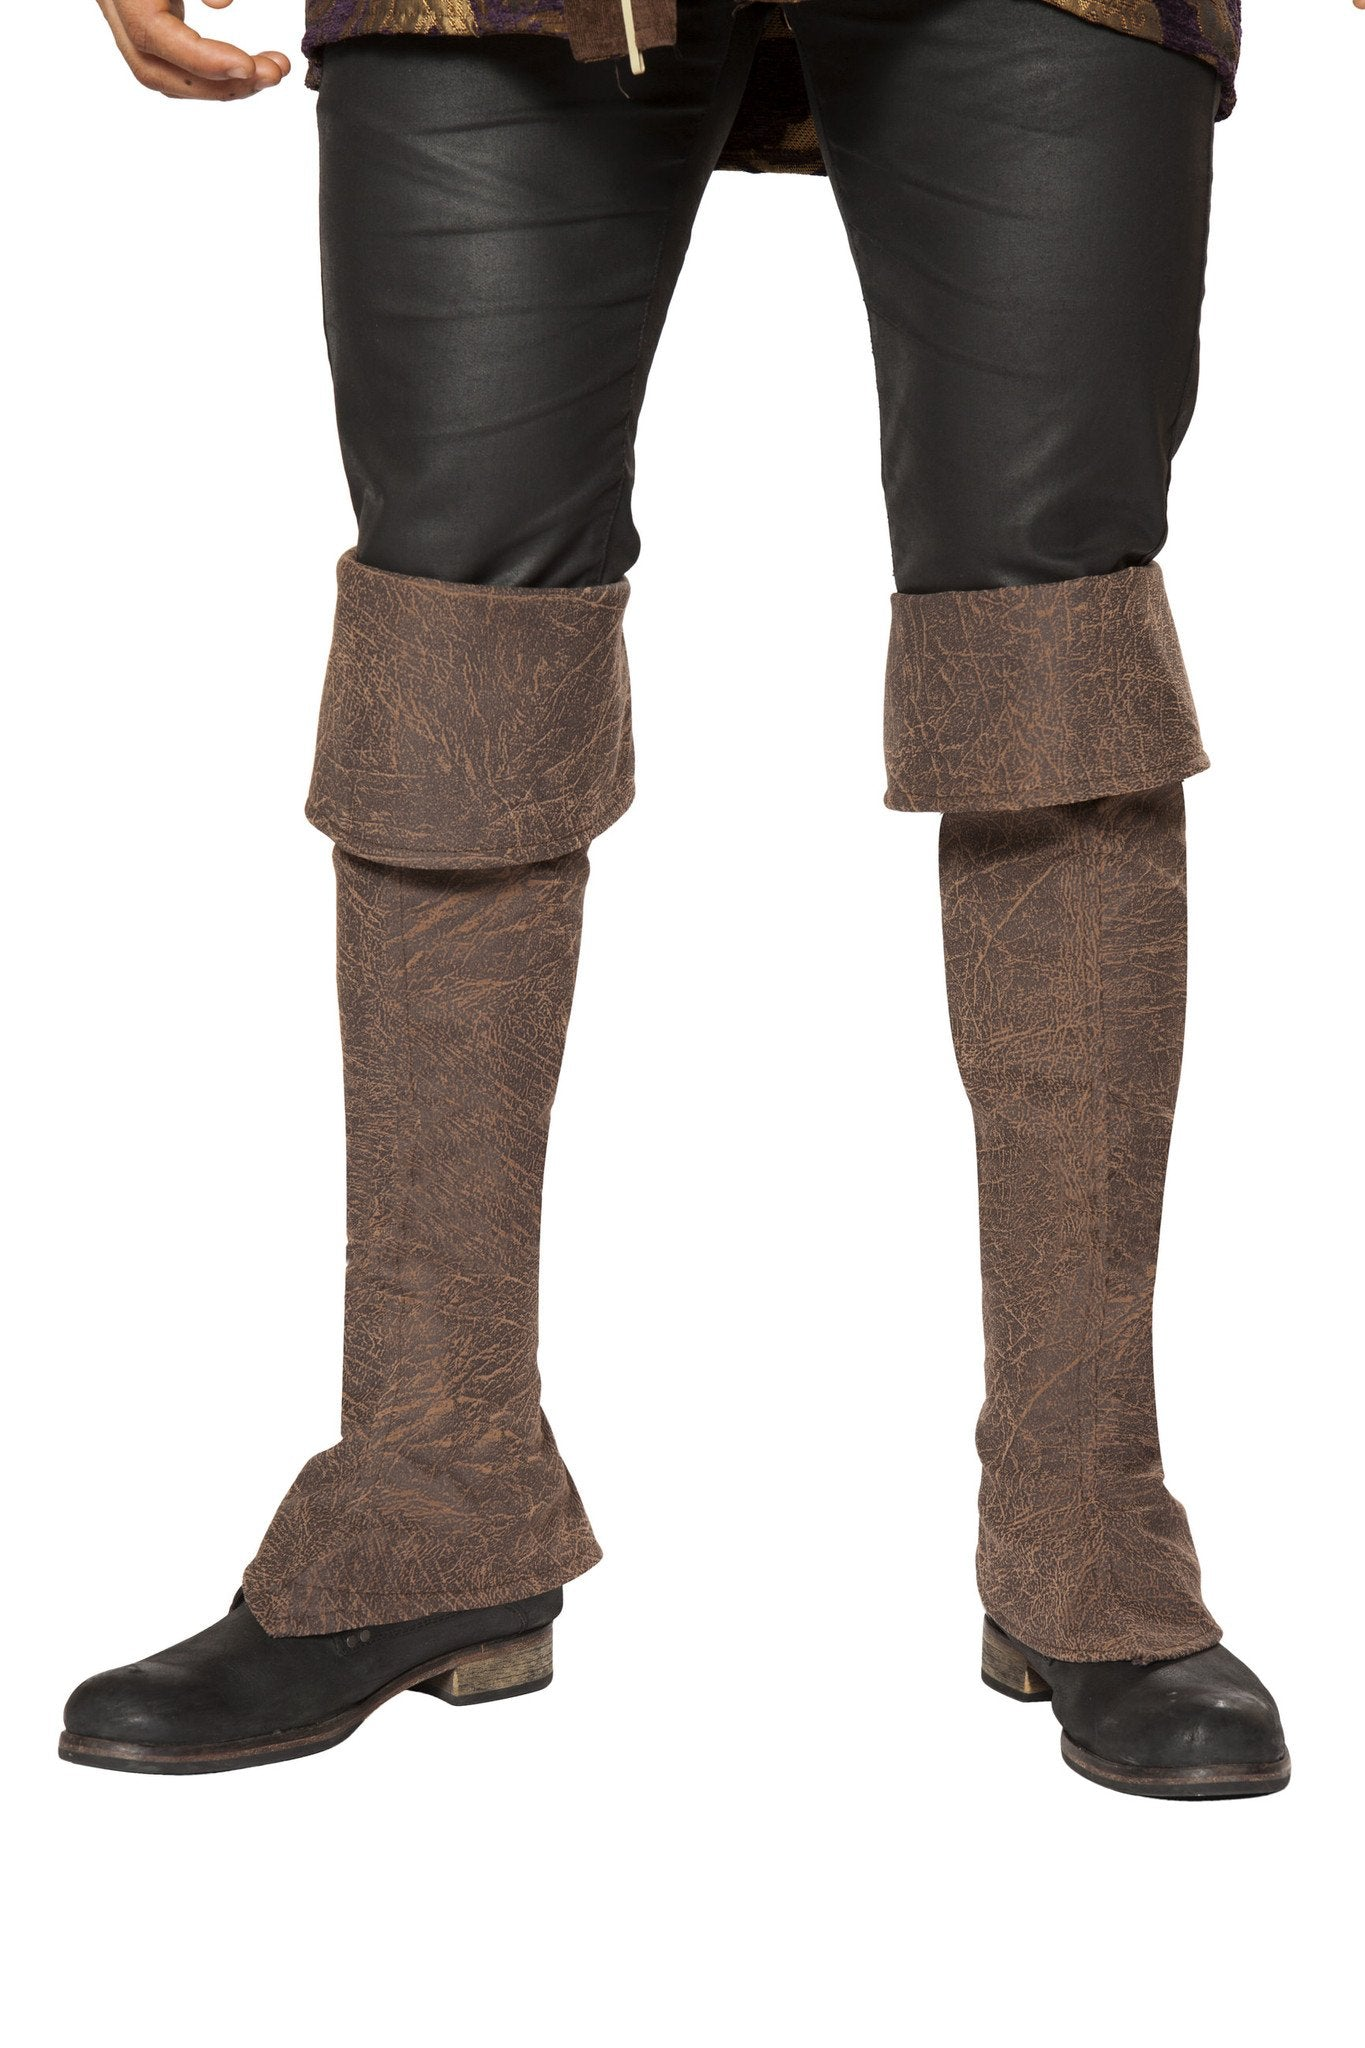 Pirate Boot Covers with Zipper Detail - PlaythingsMiami